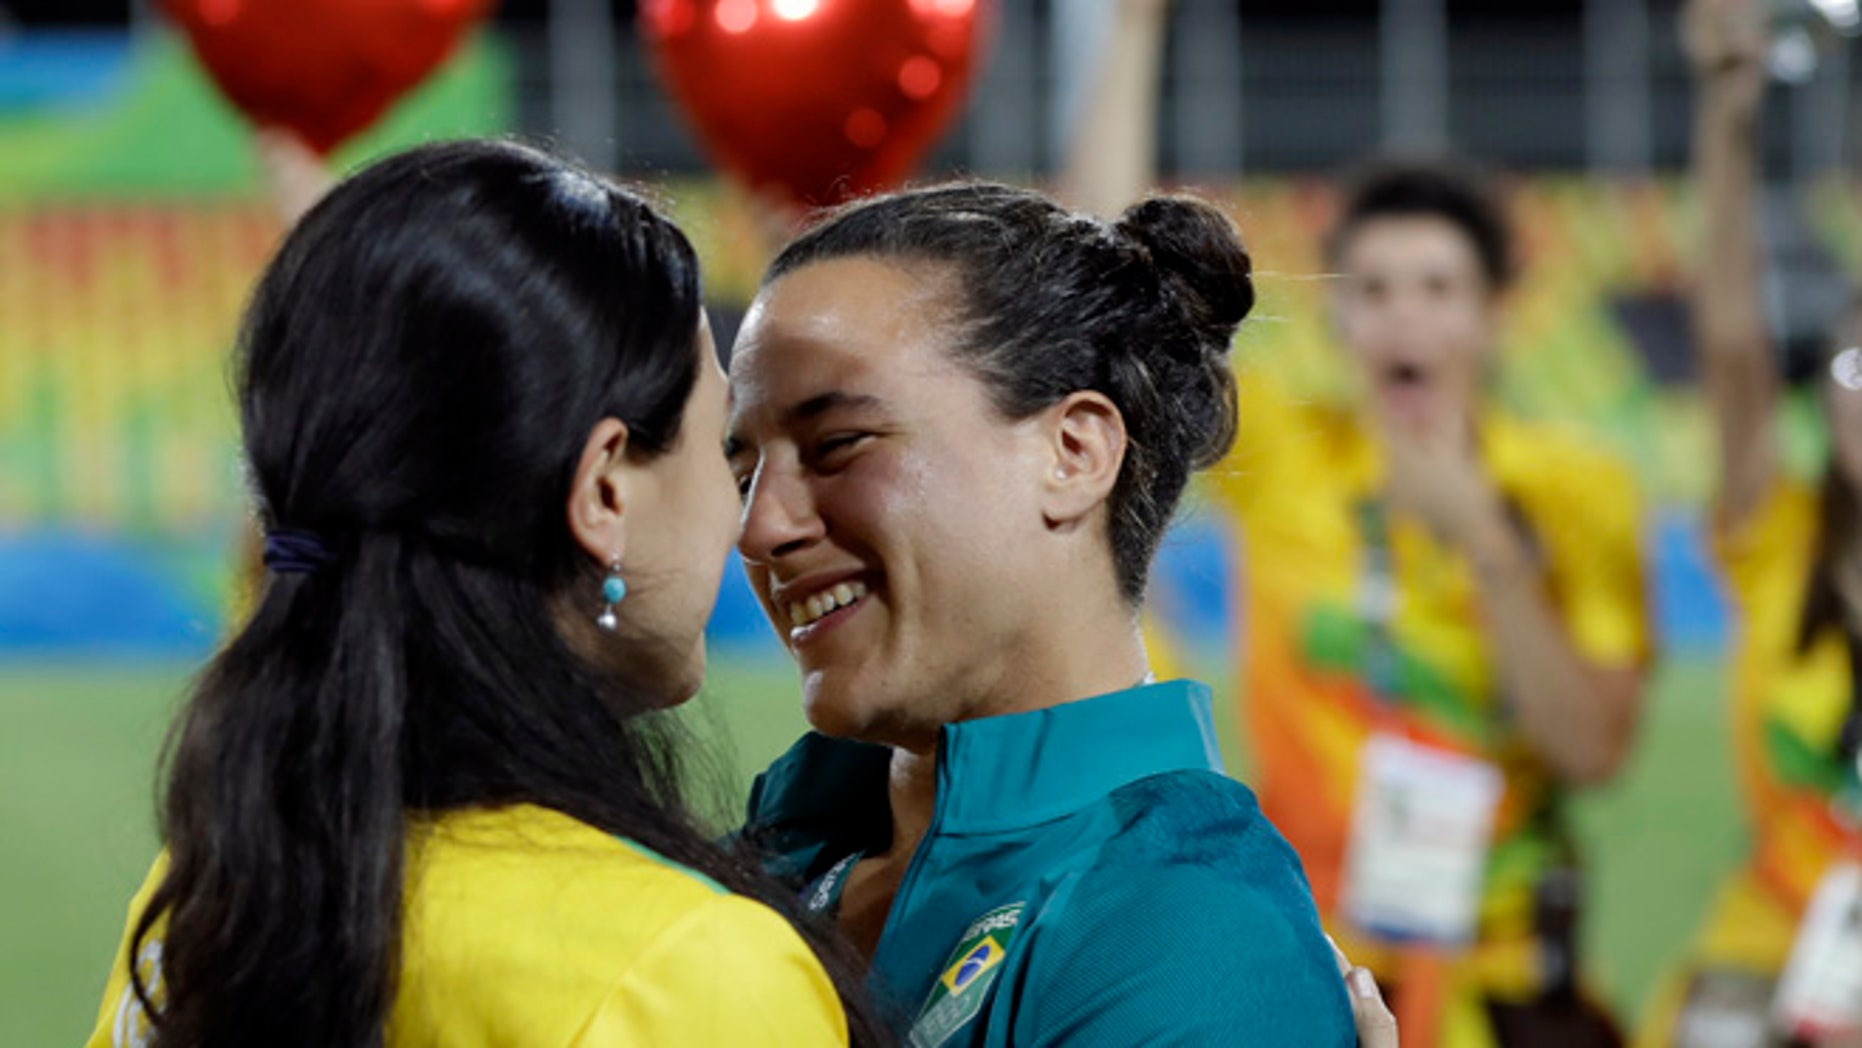 Brazil's Isadora Cerullo, right, shares a moment with her partner Marjorie Enya, after she was asked her to marry her, after the medal ceremony for the women's rugby sevens match at the Summer Olympics in Rio de Janeiro, Brazil, Monday, Aug. 8, 2016. (AP Photo/Themba Hadebe)